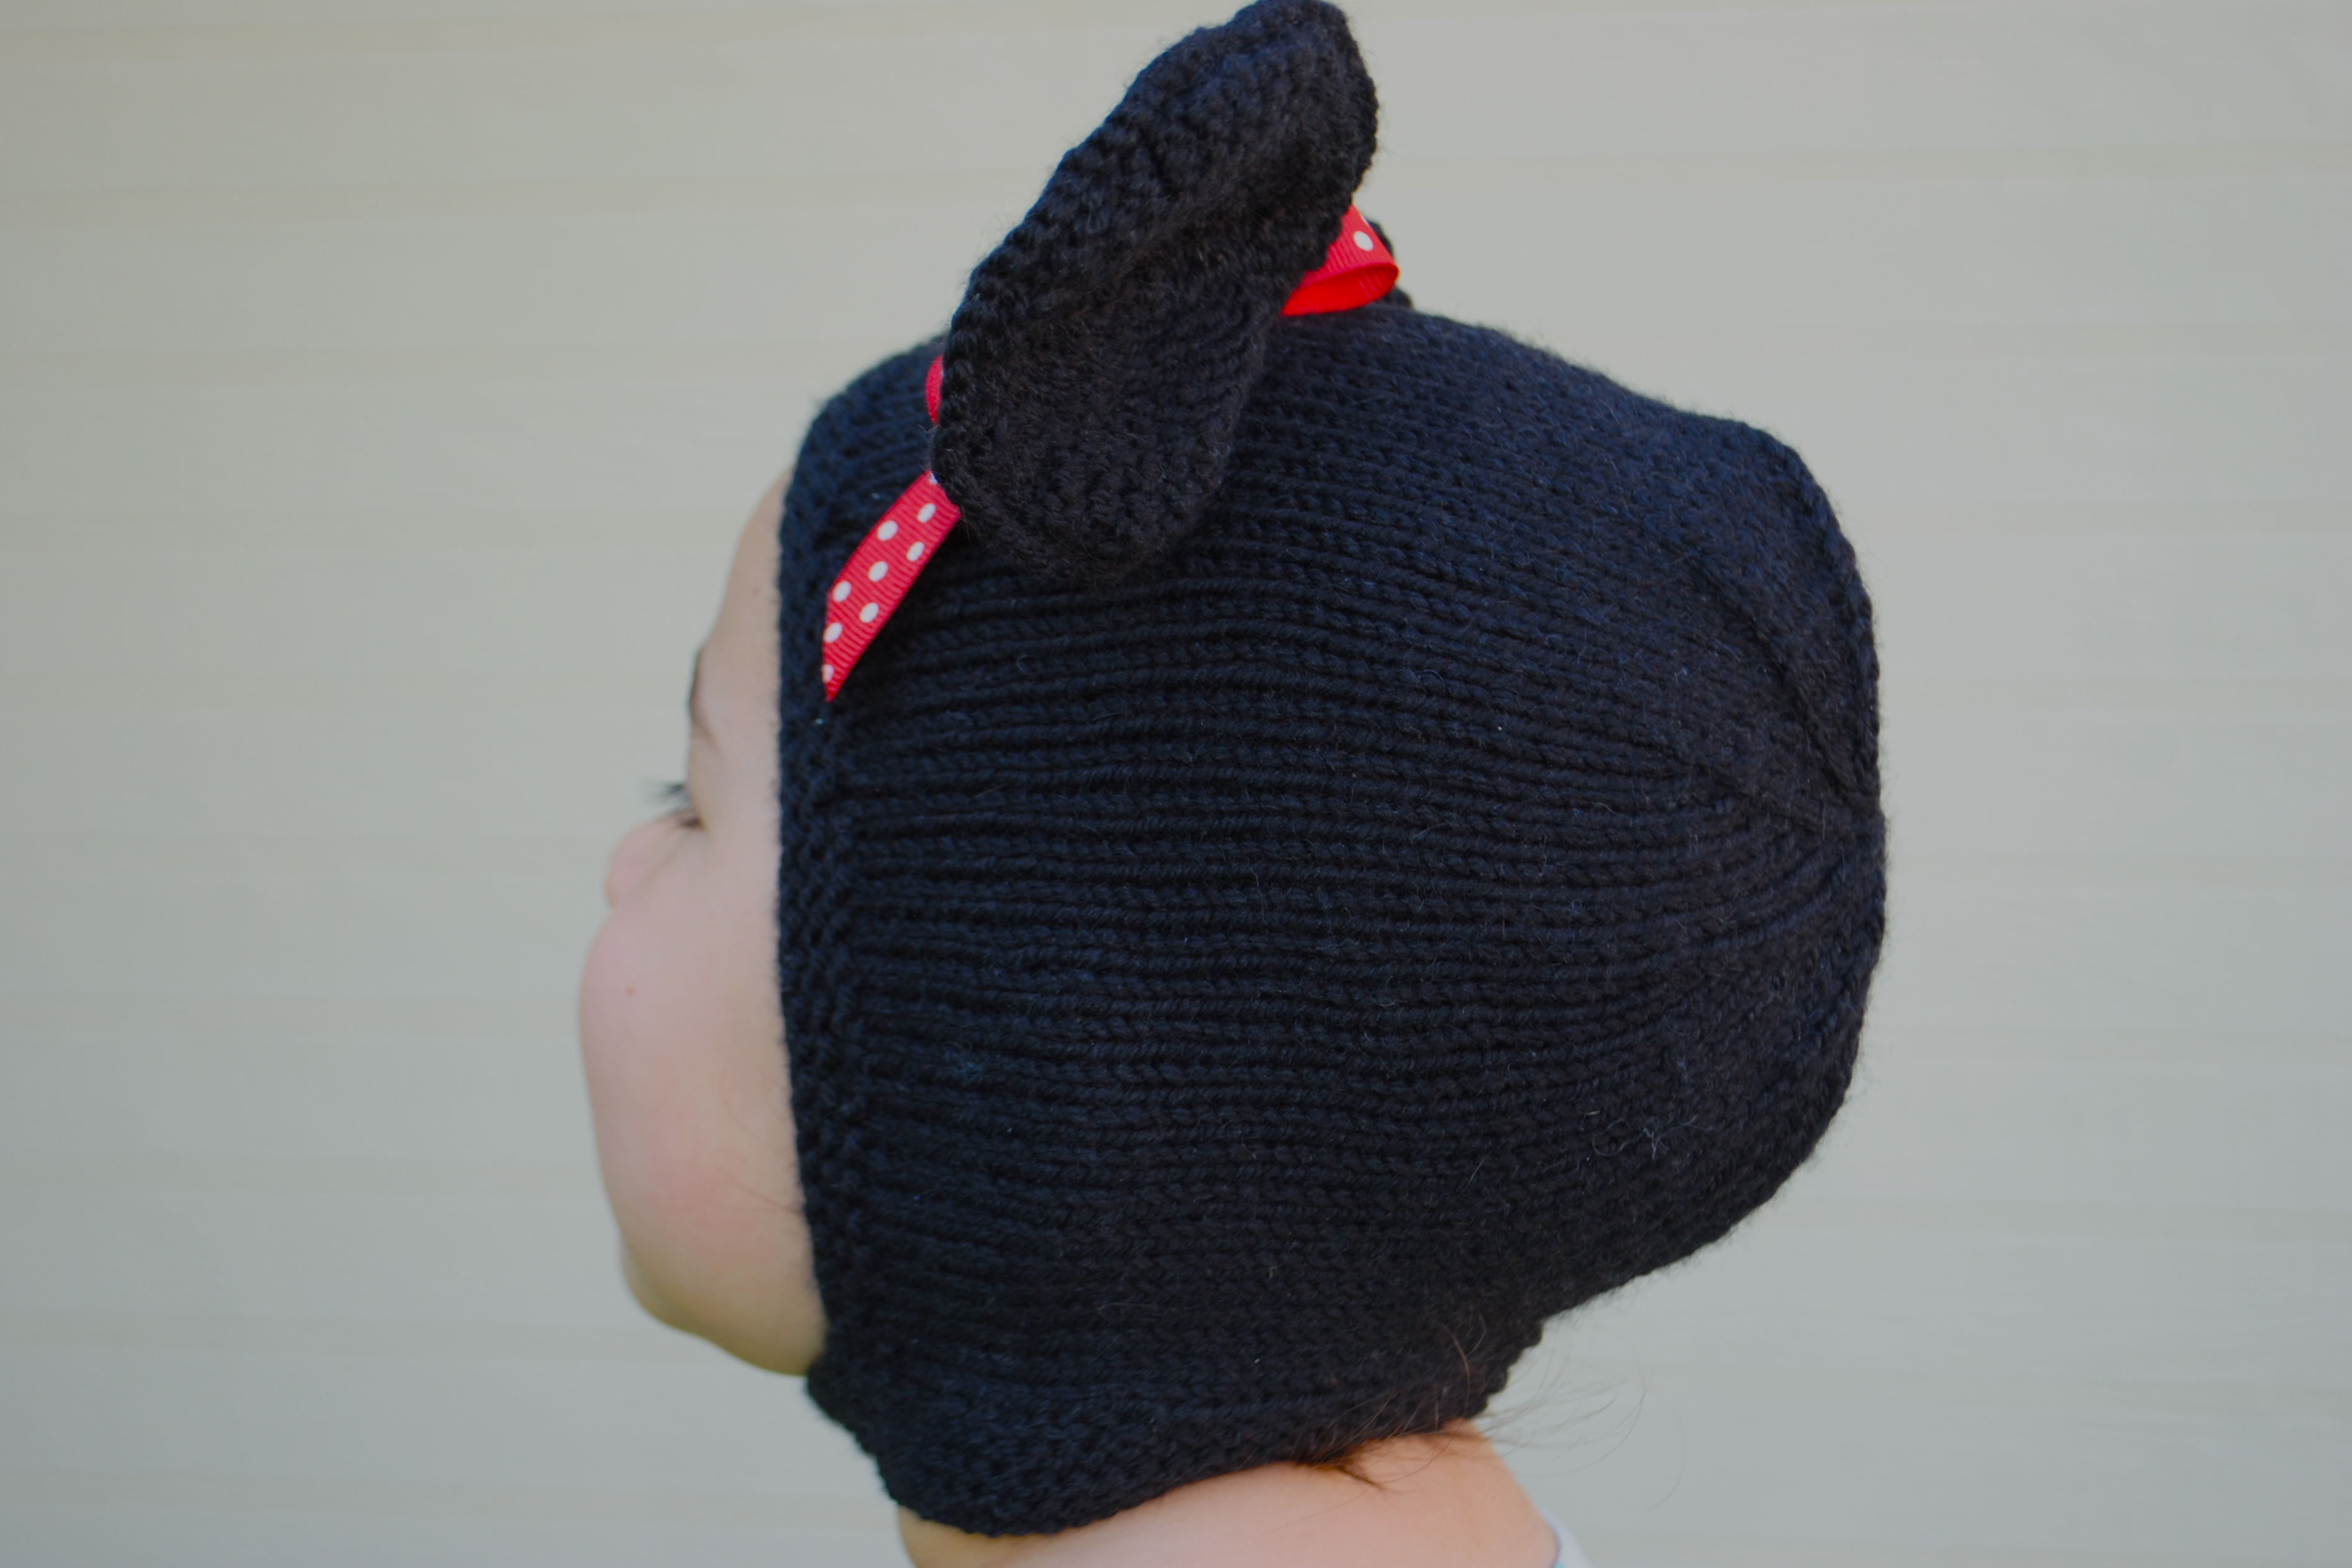 Knitted Minnie Mouse Hat Pattern : Minnie Mouse Knit Hat Pattern Joy Studio Design Gallery - Best Design